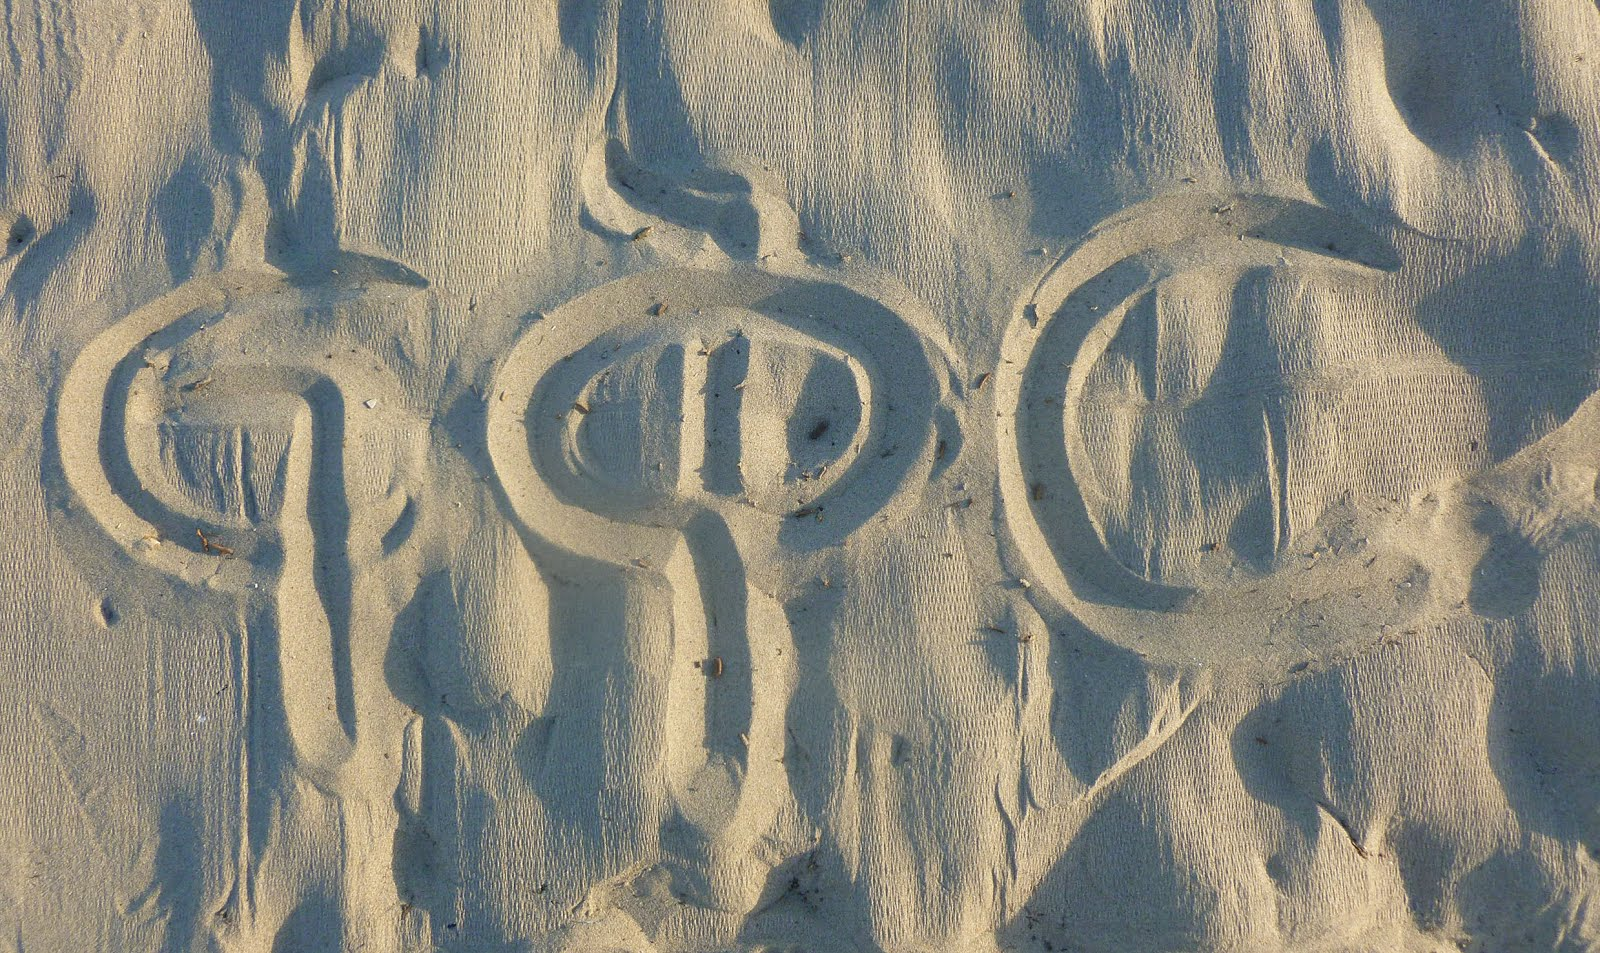 Don't write your name on sand